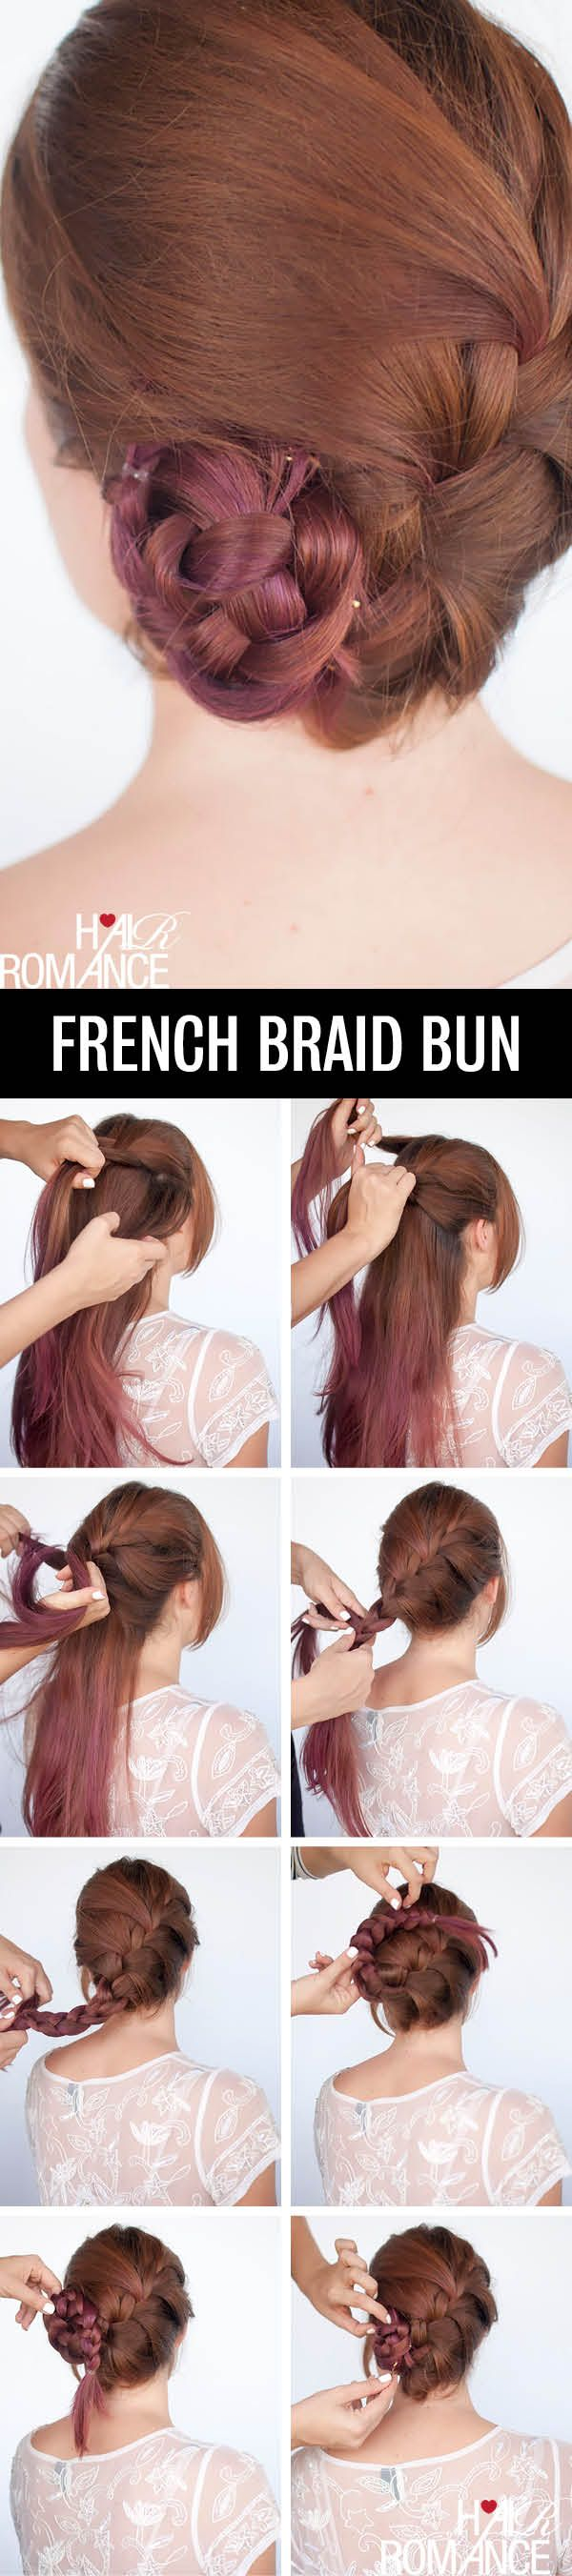 French-braid bun....